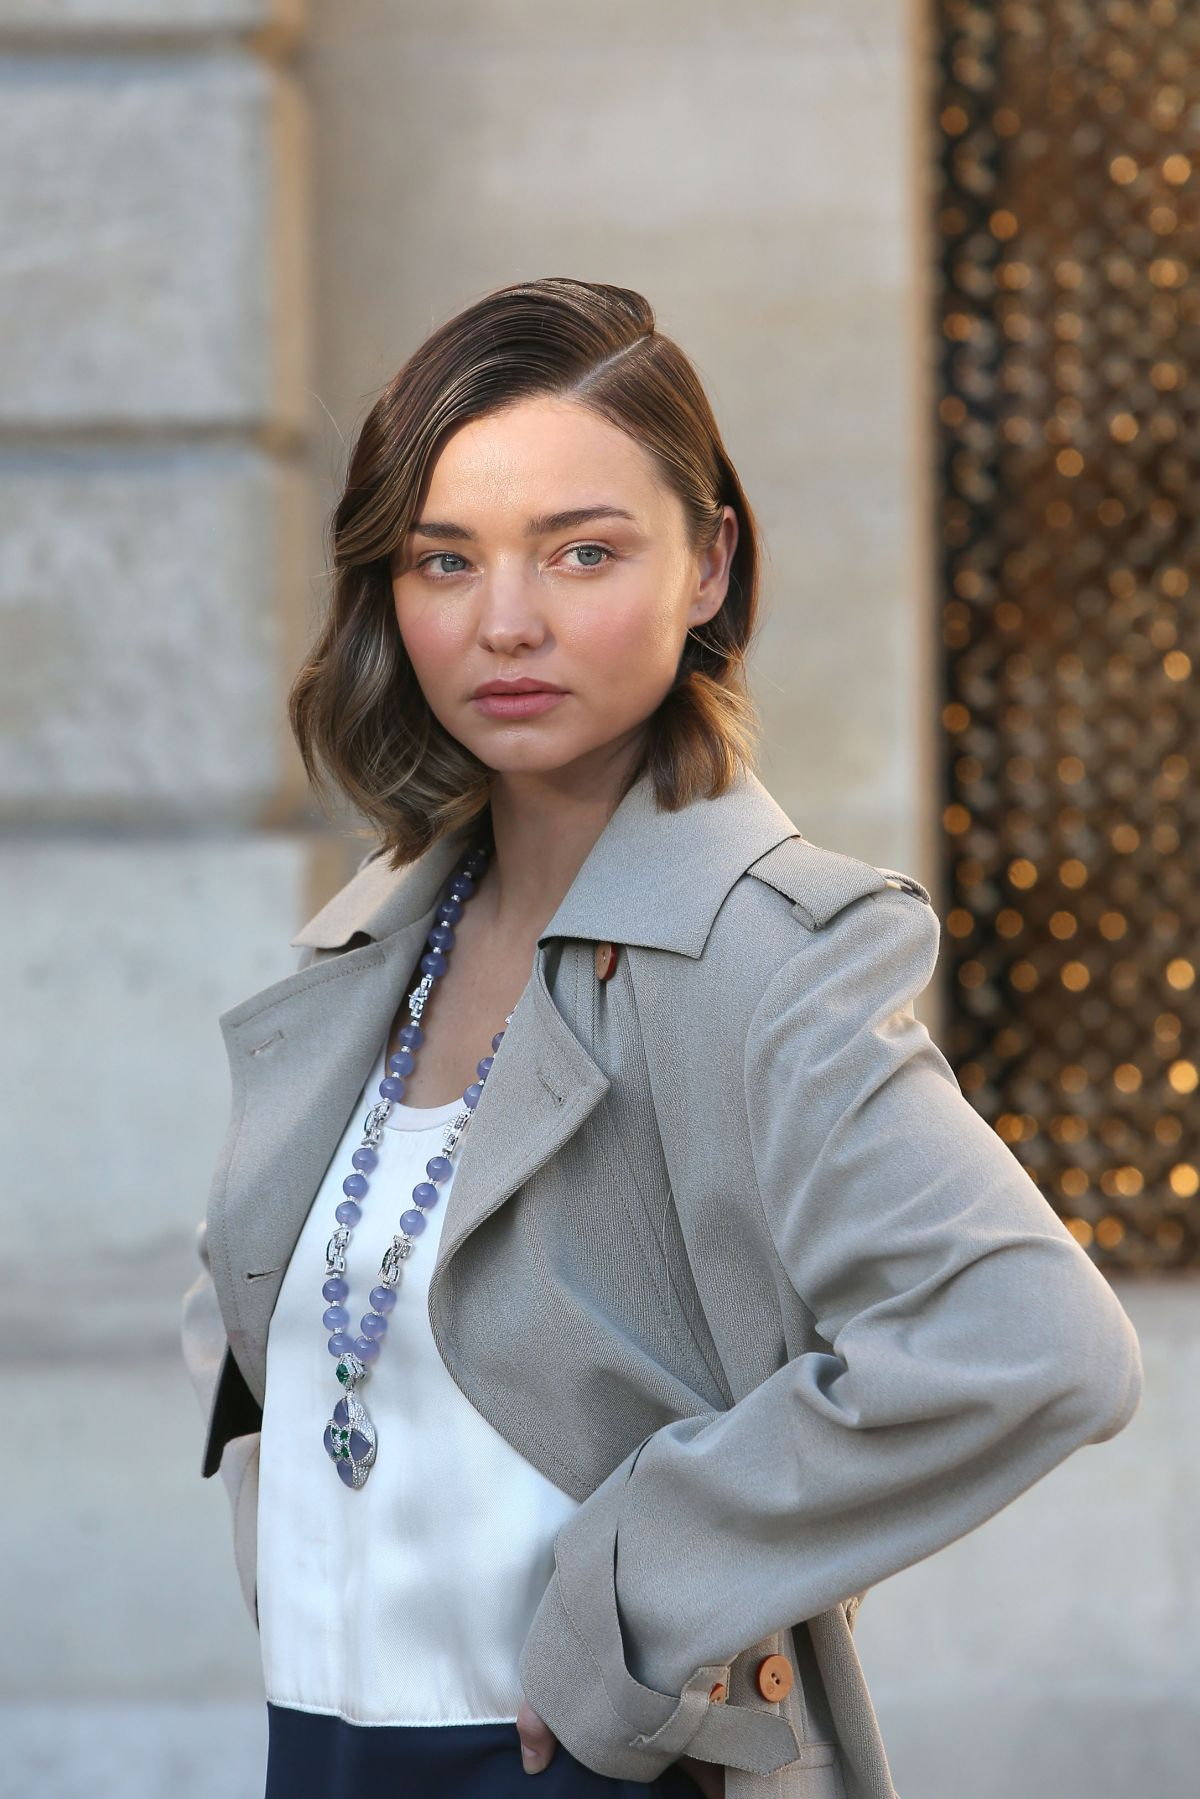 34a080d2ac9 MIRANDA KERR on the Set of a Louis Vuitton Photoshoot in Paris 10 04 ...